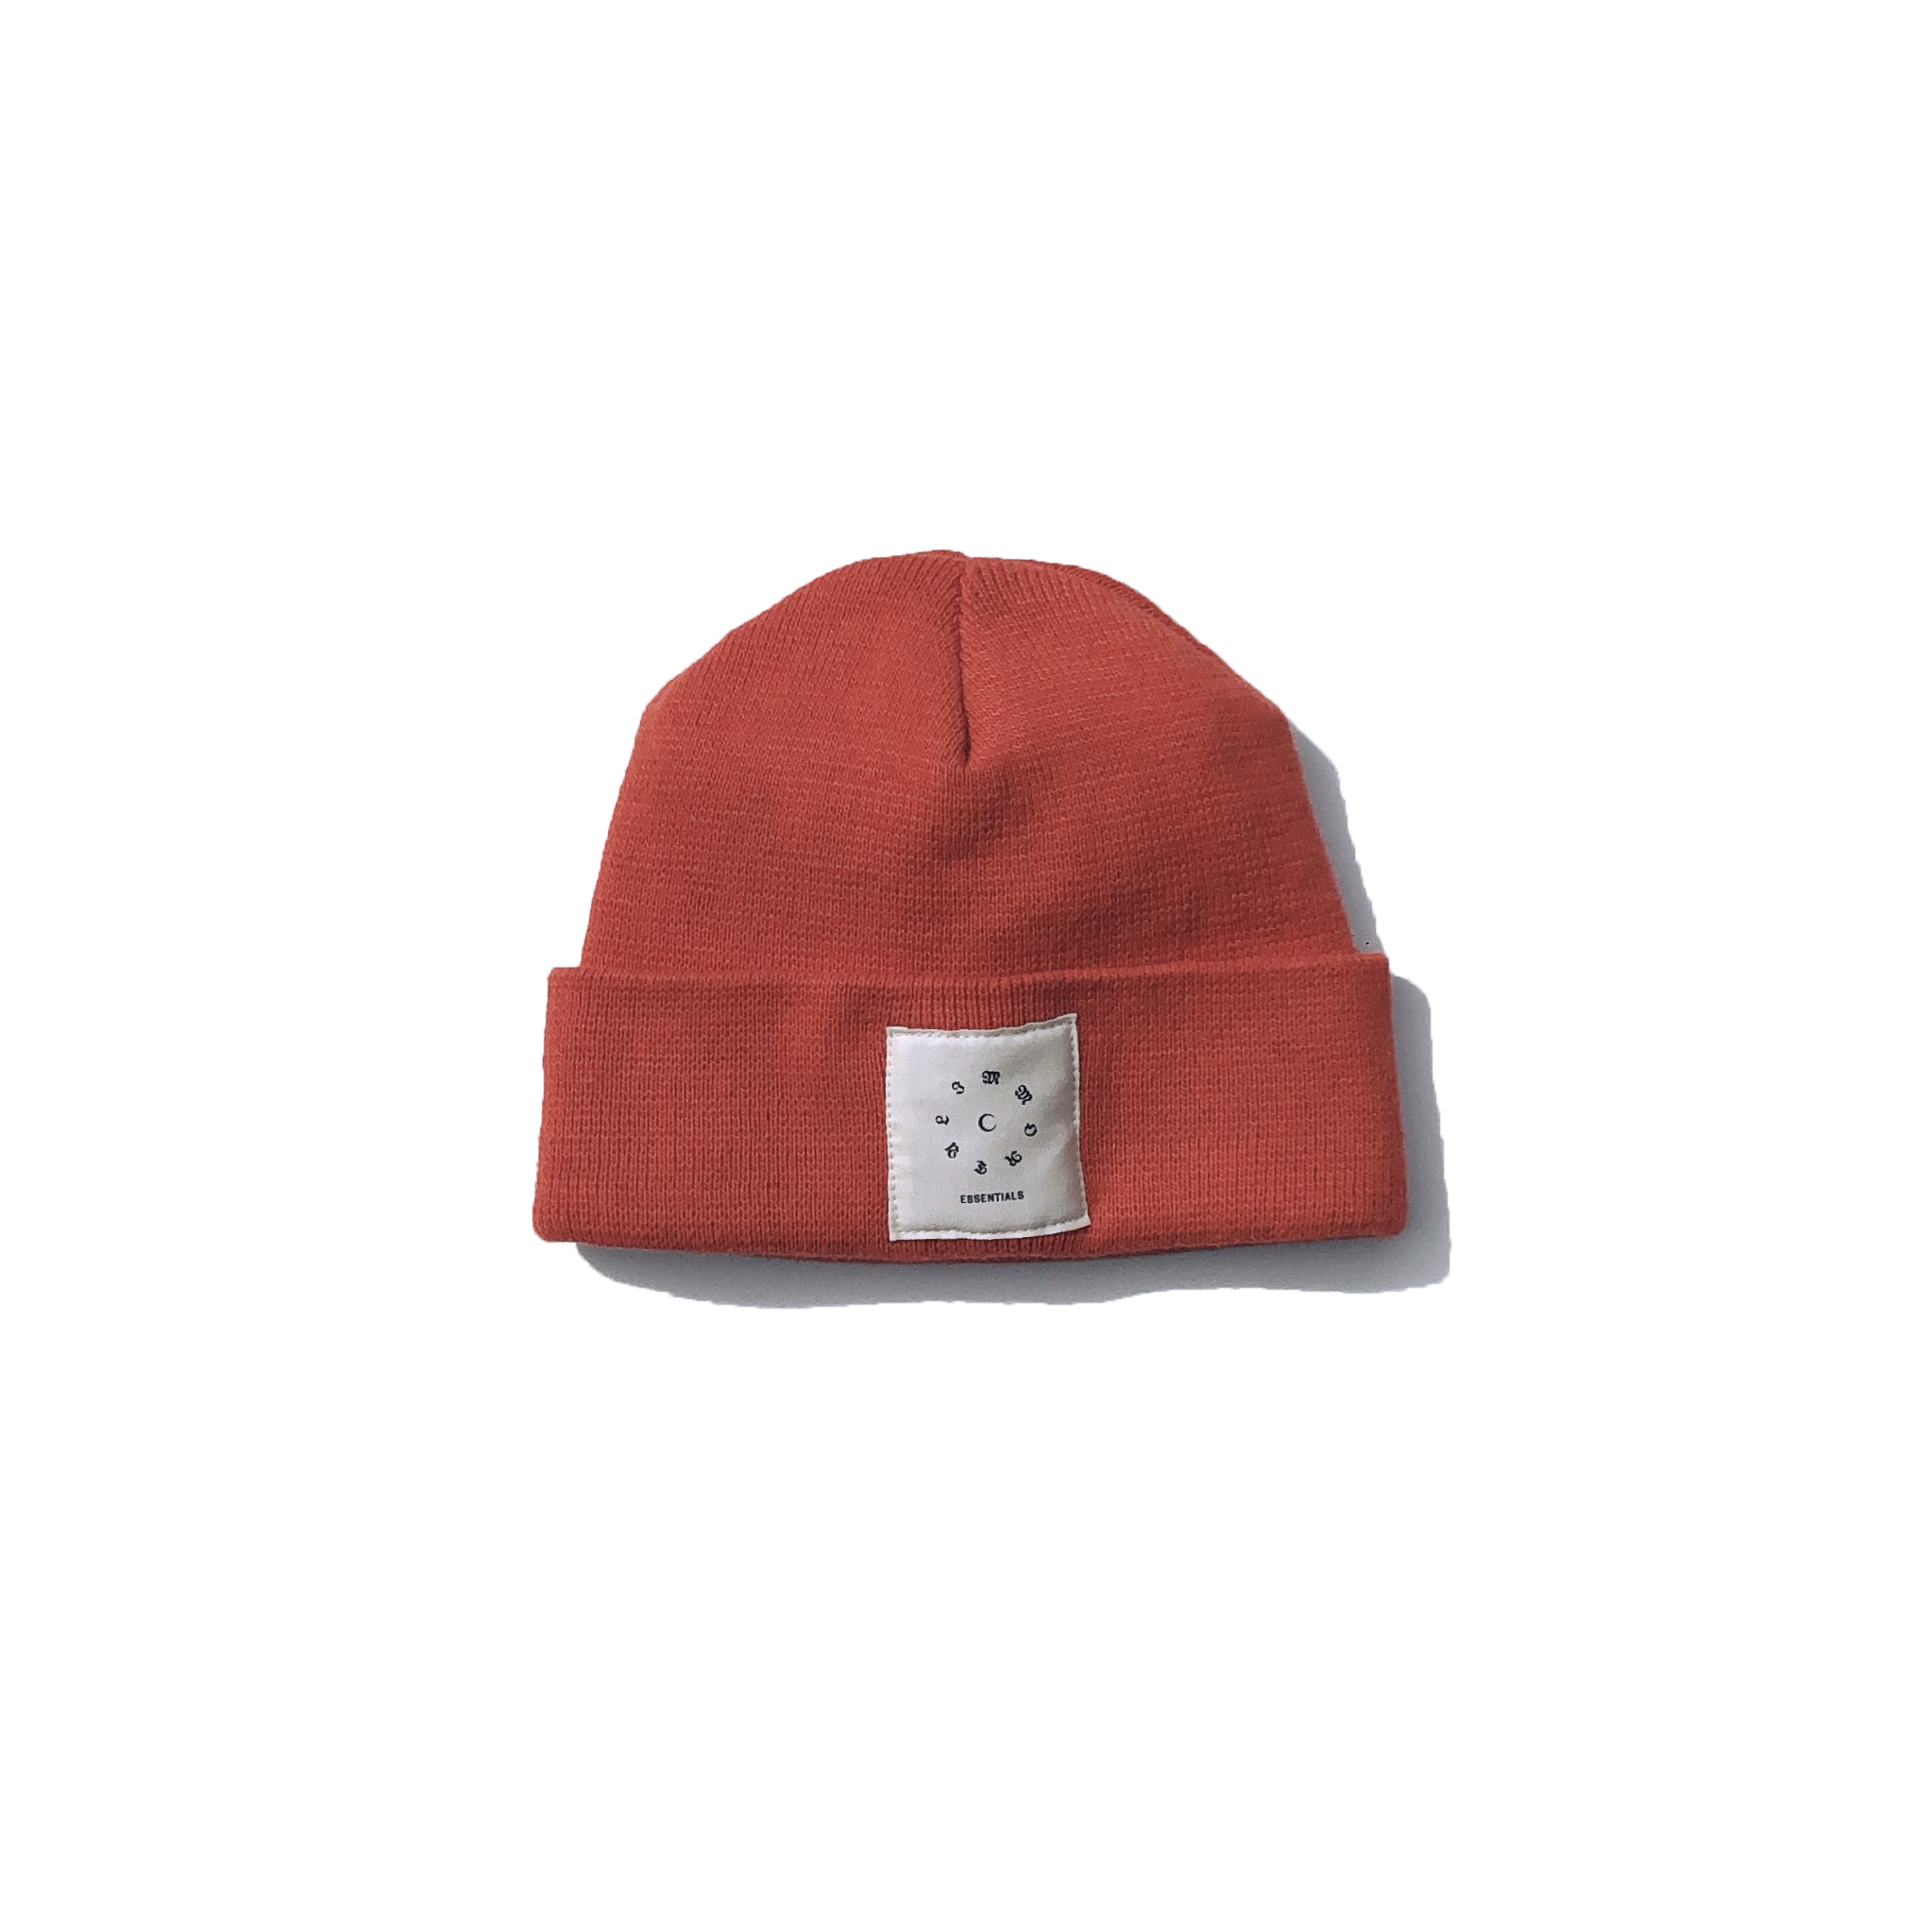 932e149db48 Immortal Essentials - Beanie (Burnt Orange)